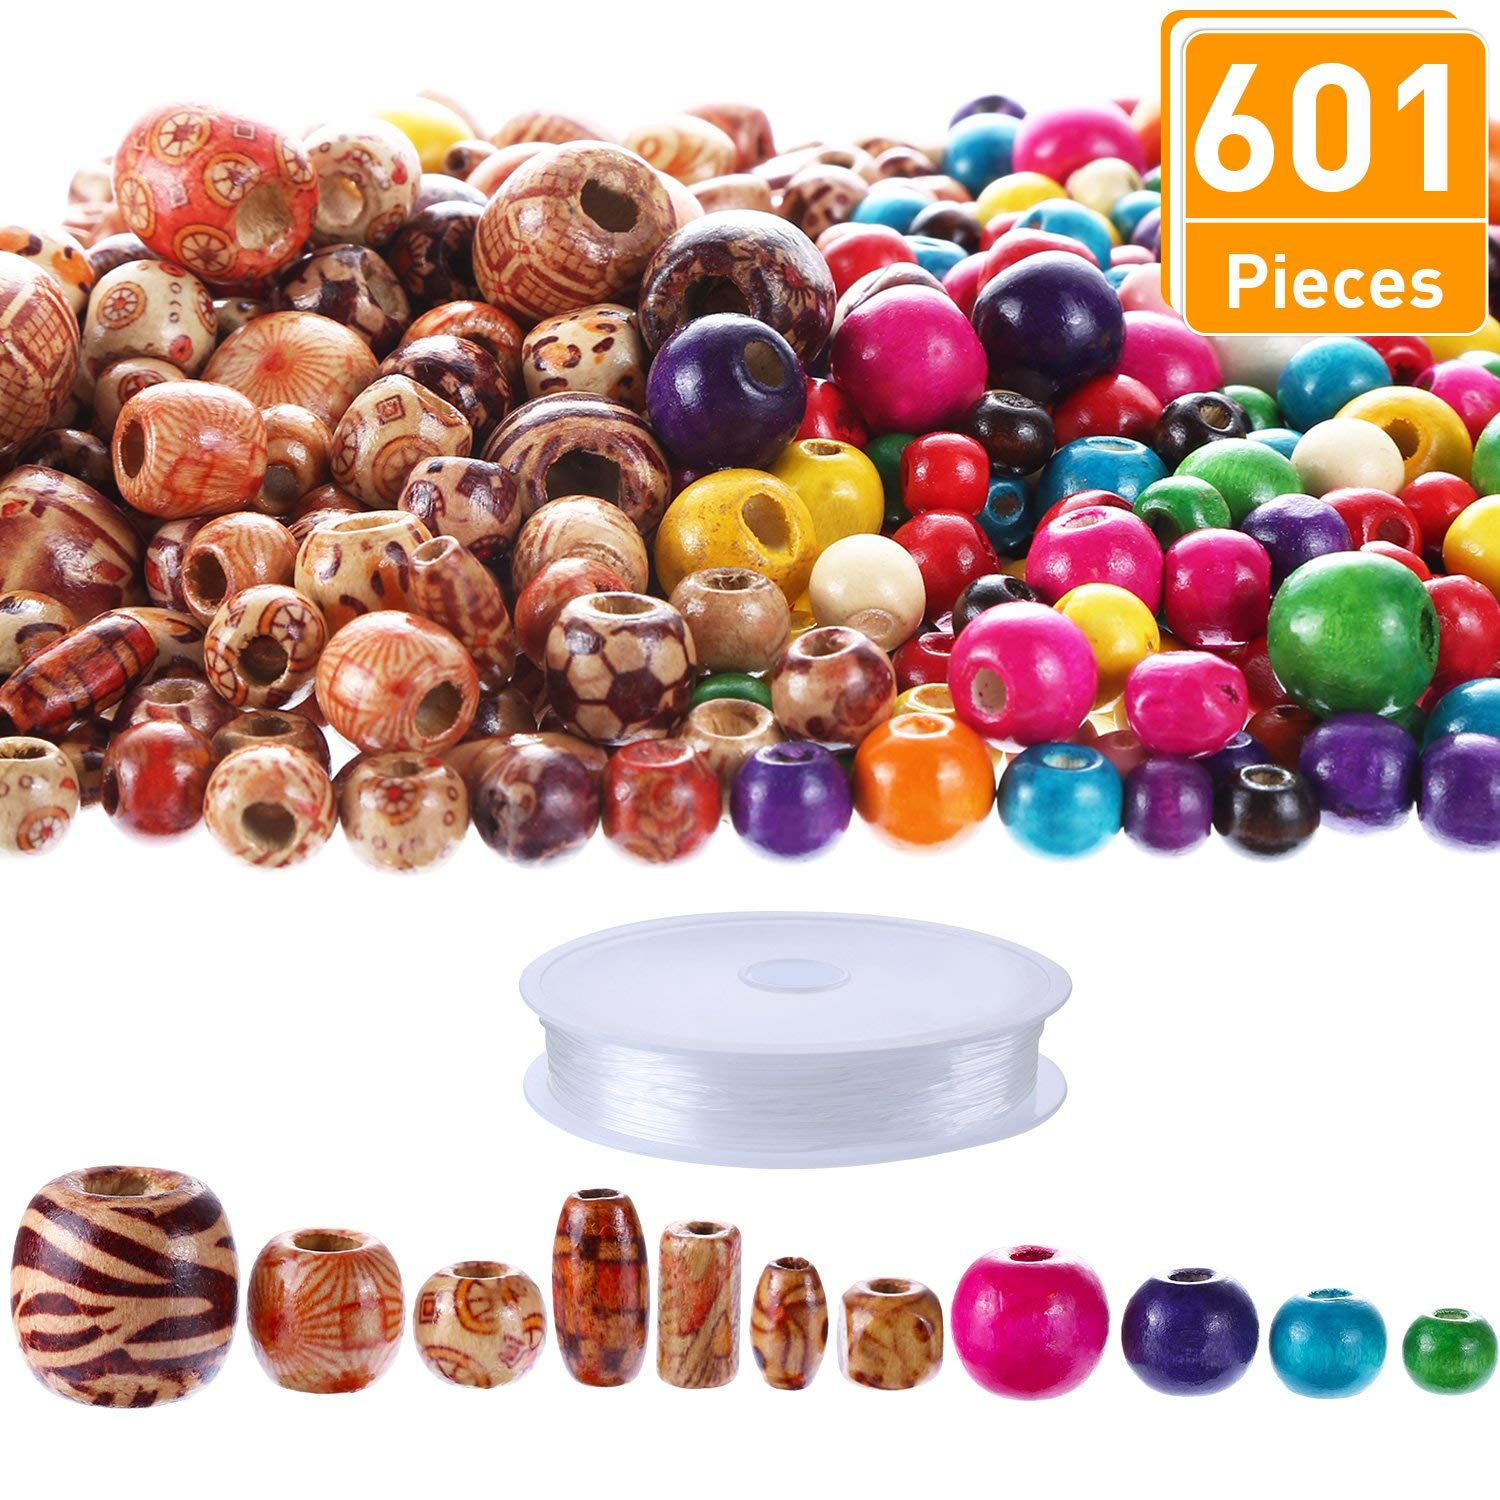 Blulu 600 Pieces Natural Color Printed Wood Beads Multi-Color Round Wooden Beads Wooden Spacer Beads with Clear Elastic String for DIY Jewelry Making